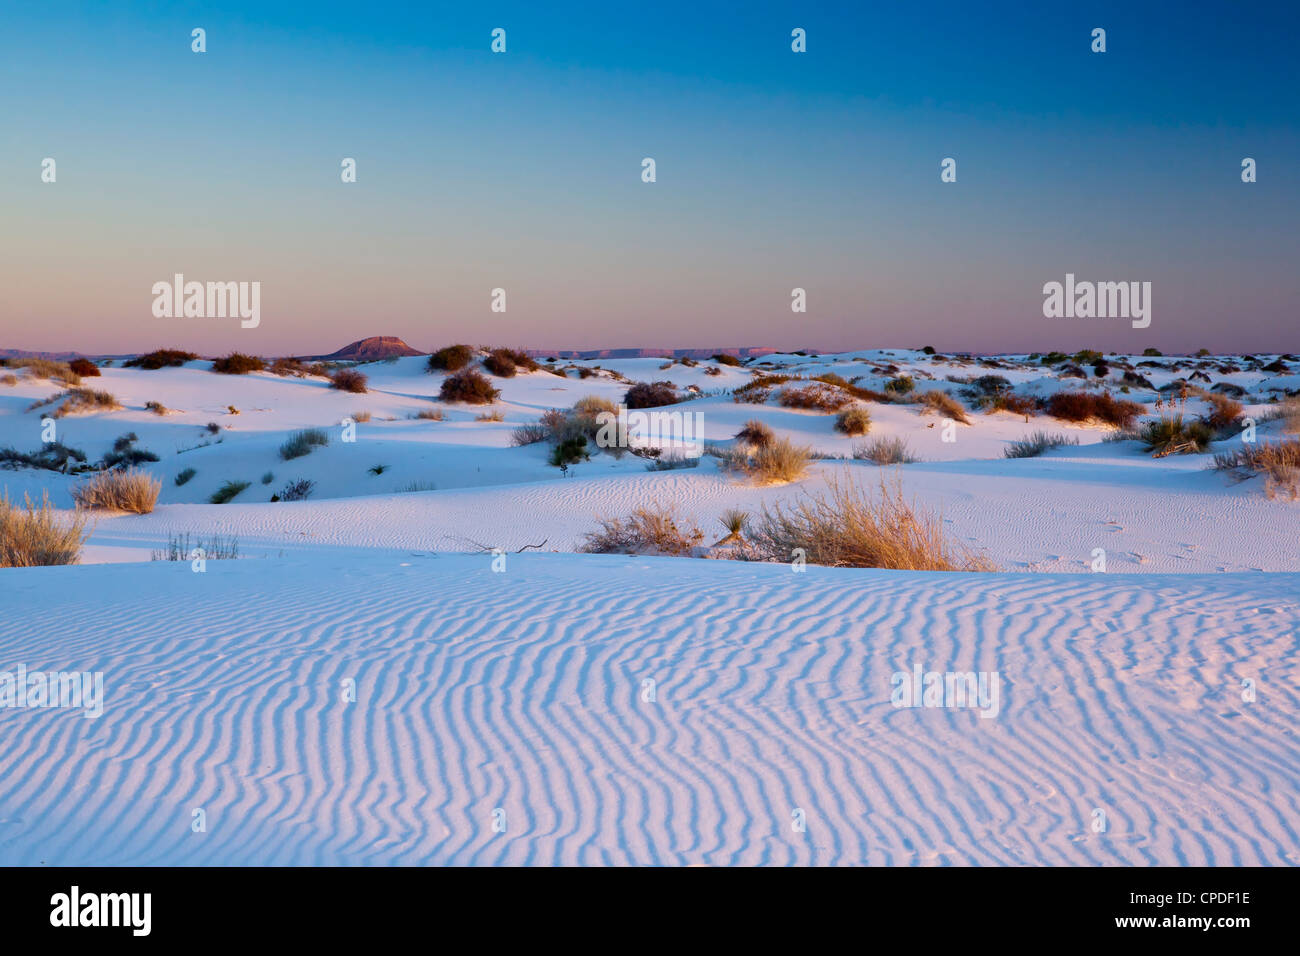 White Sands National Monument, New Mexico, United States of America, North America - Stock Image